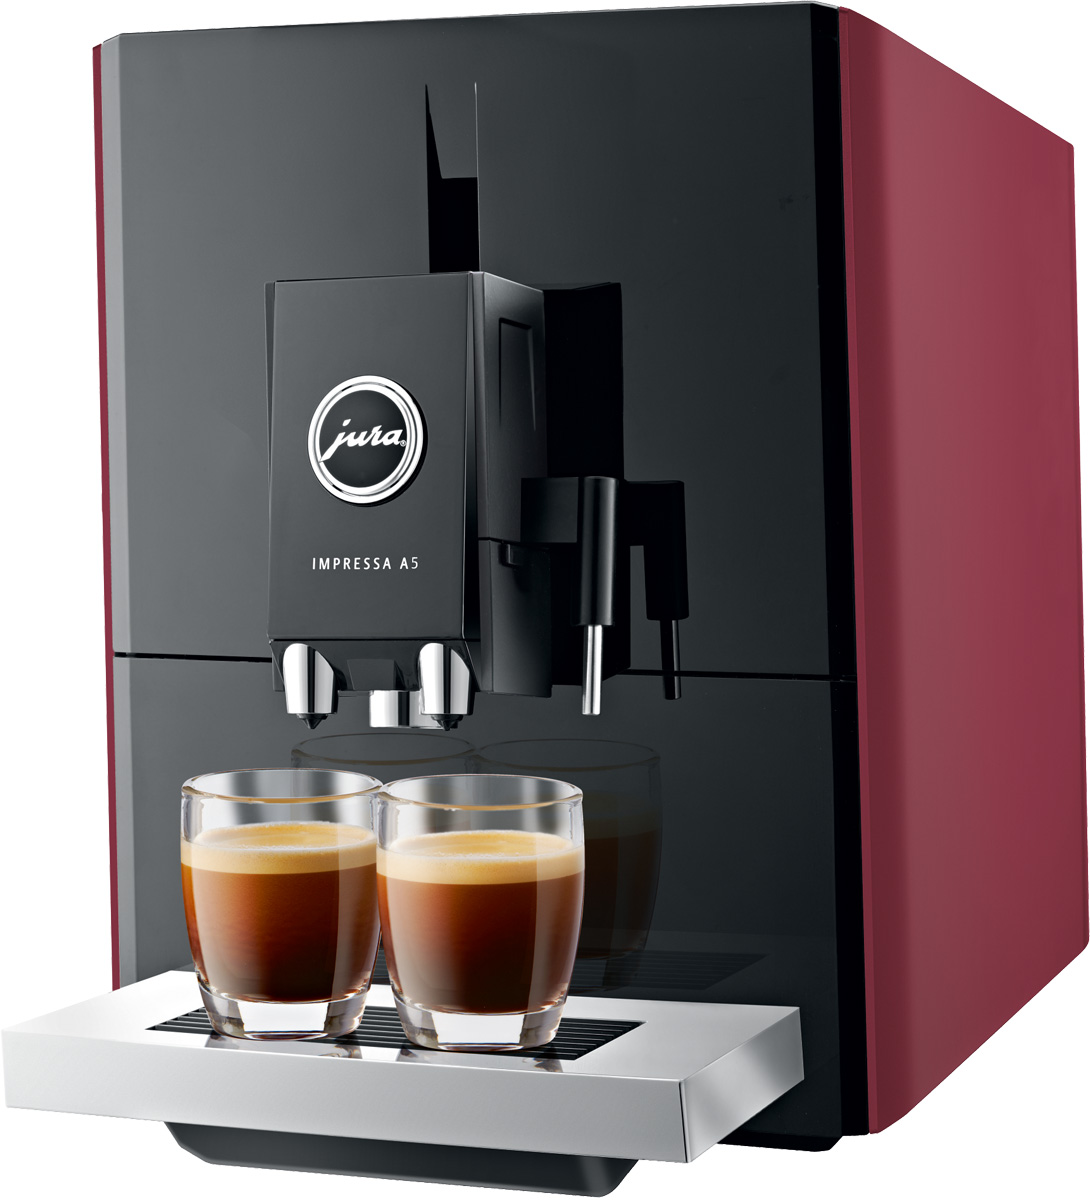 philips avance food processor price motorcycle electrical wiring diagram thread best jura 13781 a5 coffee maker prices in australia getprice